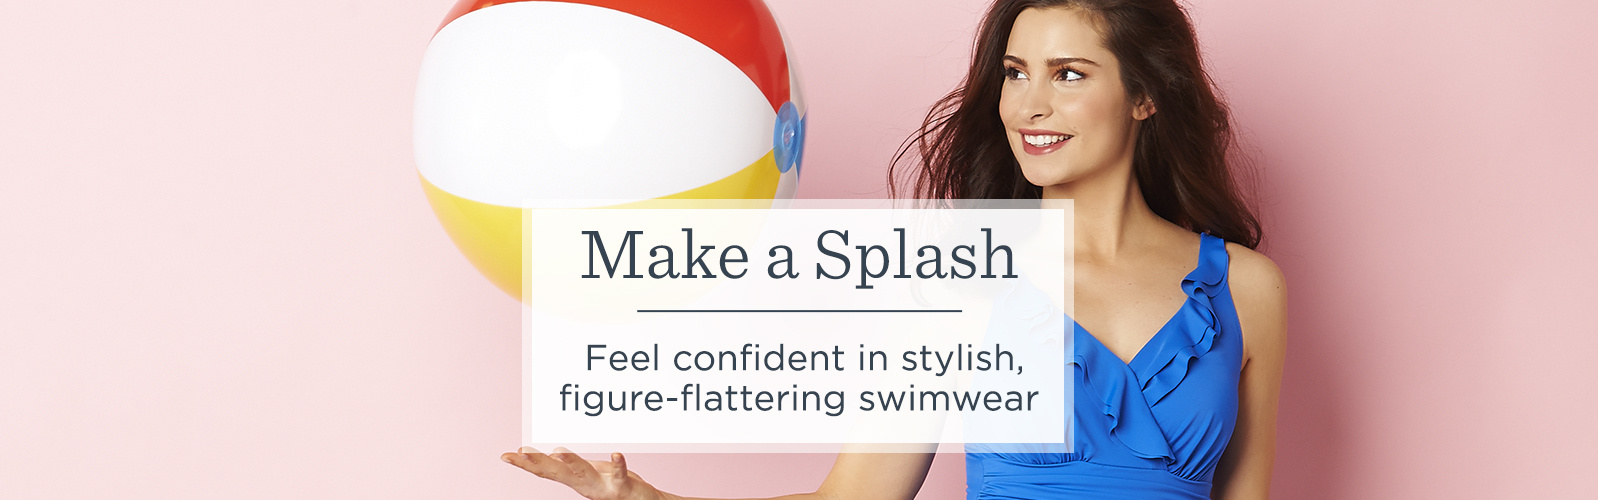 Make a Splash. Feel confident in stylish, figure-flattering swimwear